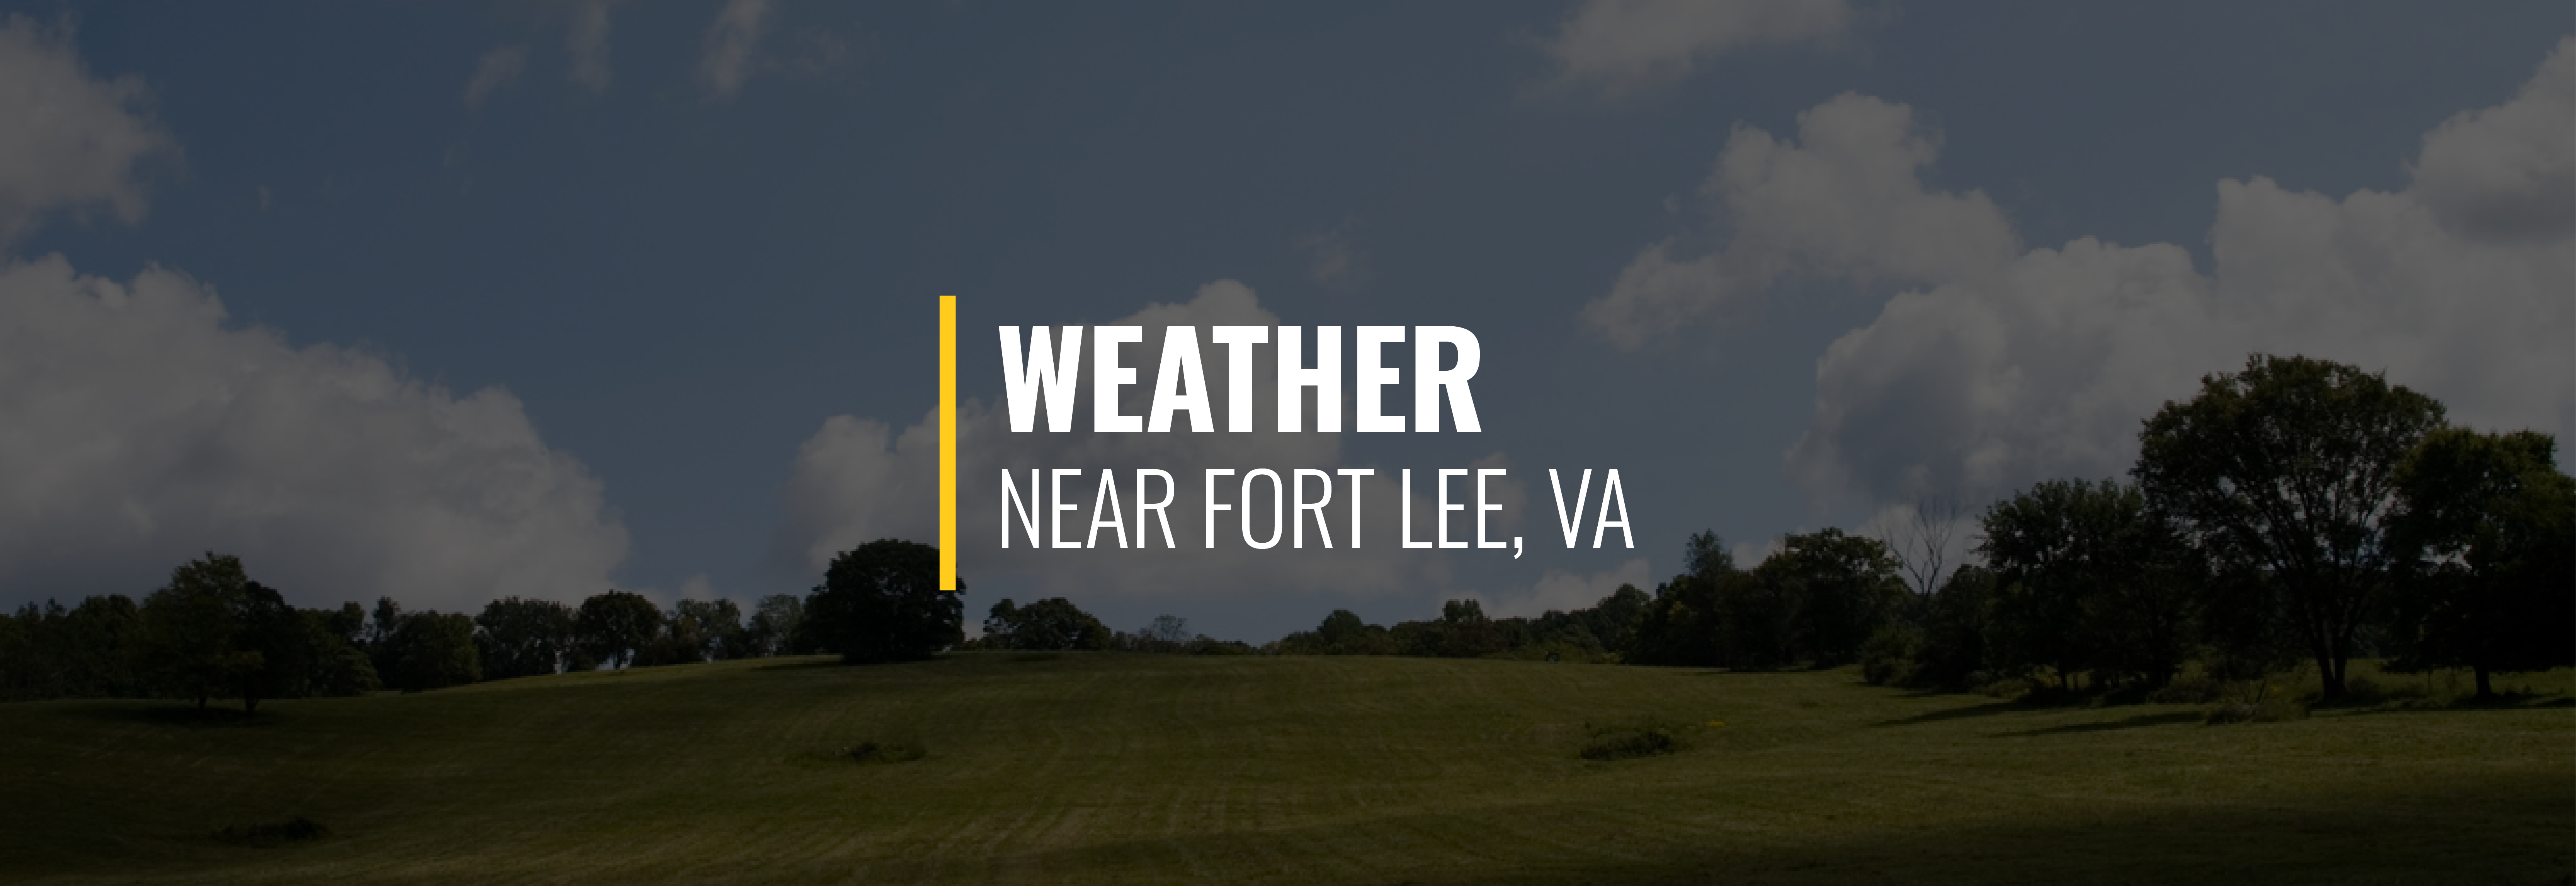 Fort Lee Weather